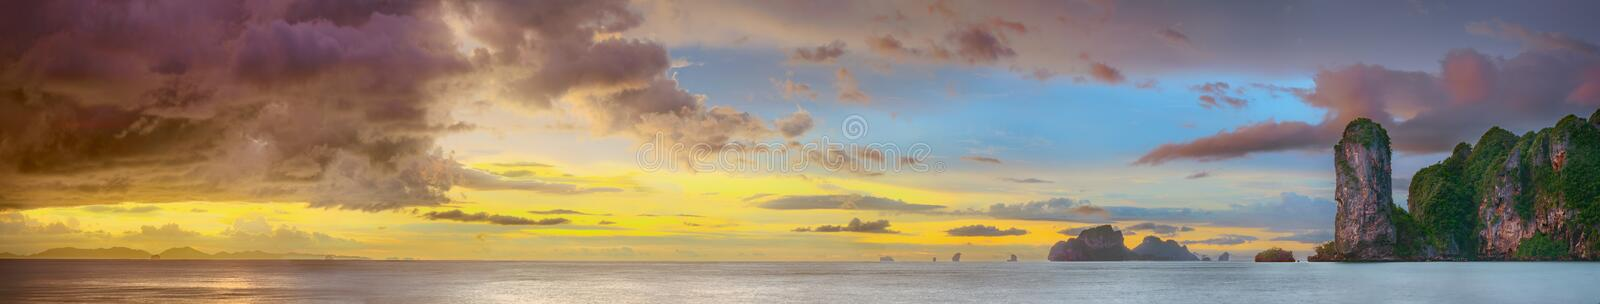 Travel vacation background stock images